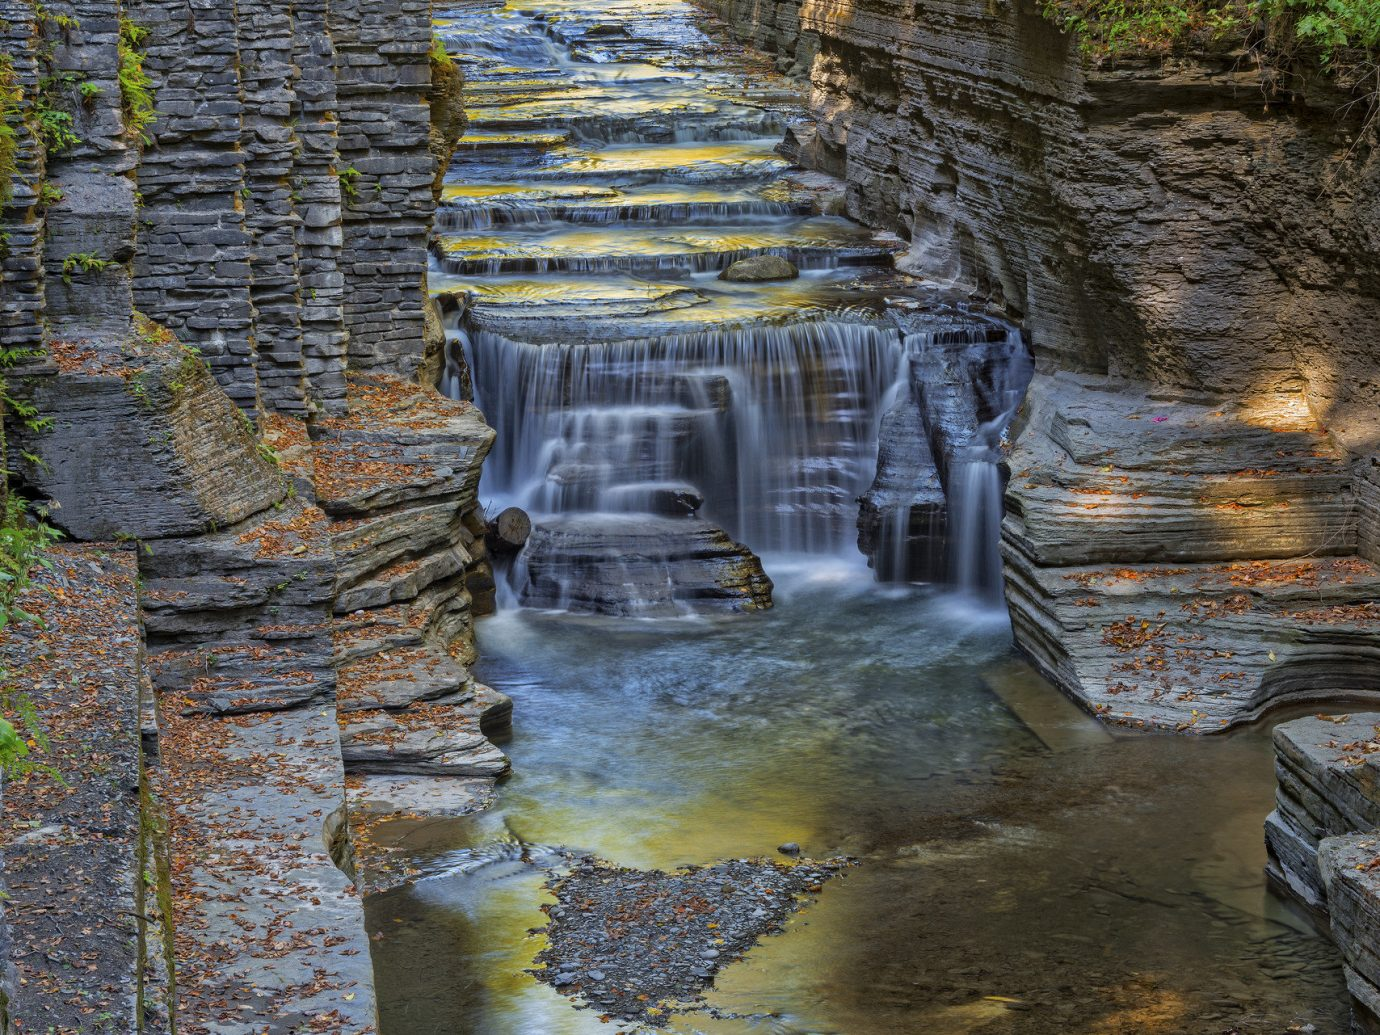 Trip Ideas Nature Waterfall water outdoor rock wall Ruins reflection water feature autumn ancient history terrain cliff stream geology stone